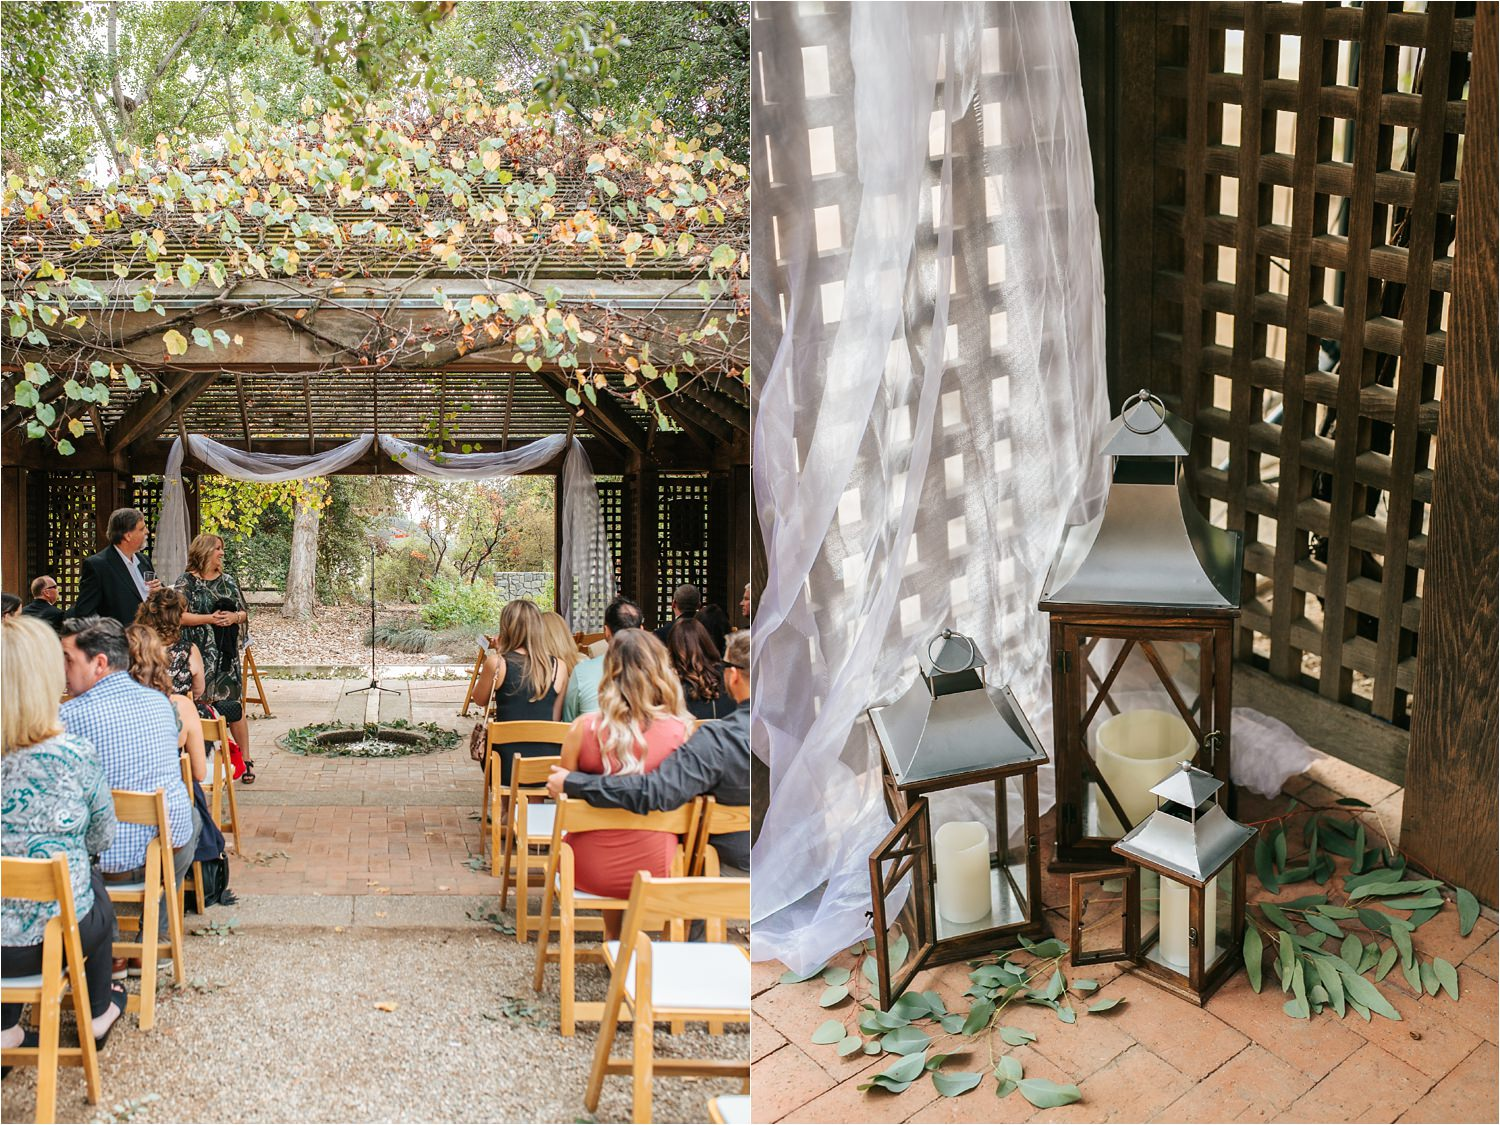 Romantic Wedding Ceremony Decor - http://brittneyhannonphotography.com